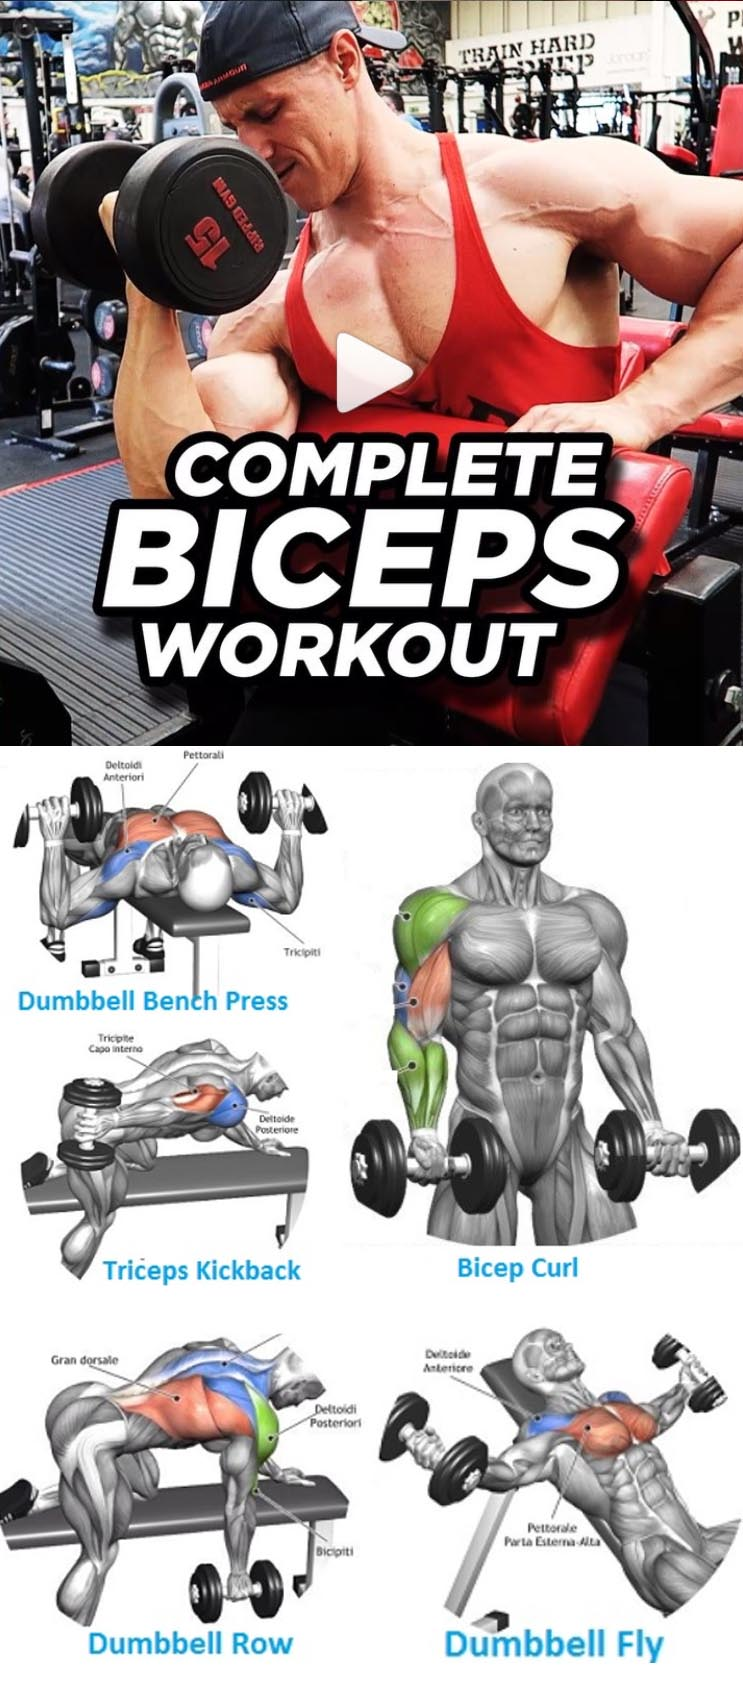 COMPLETE BICEPS WORKOUT